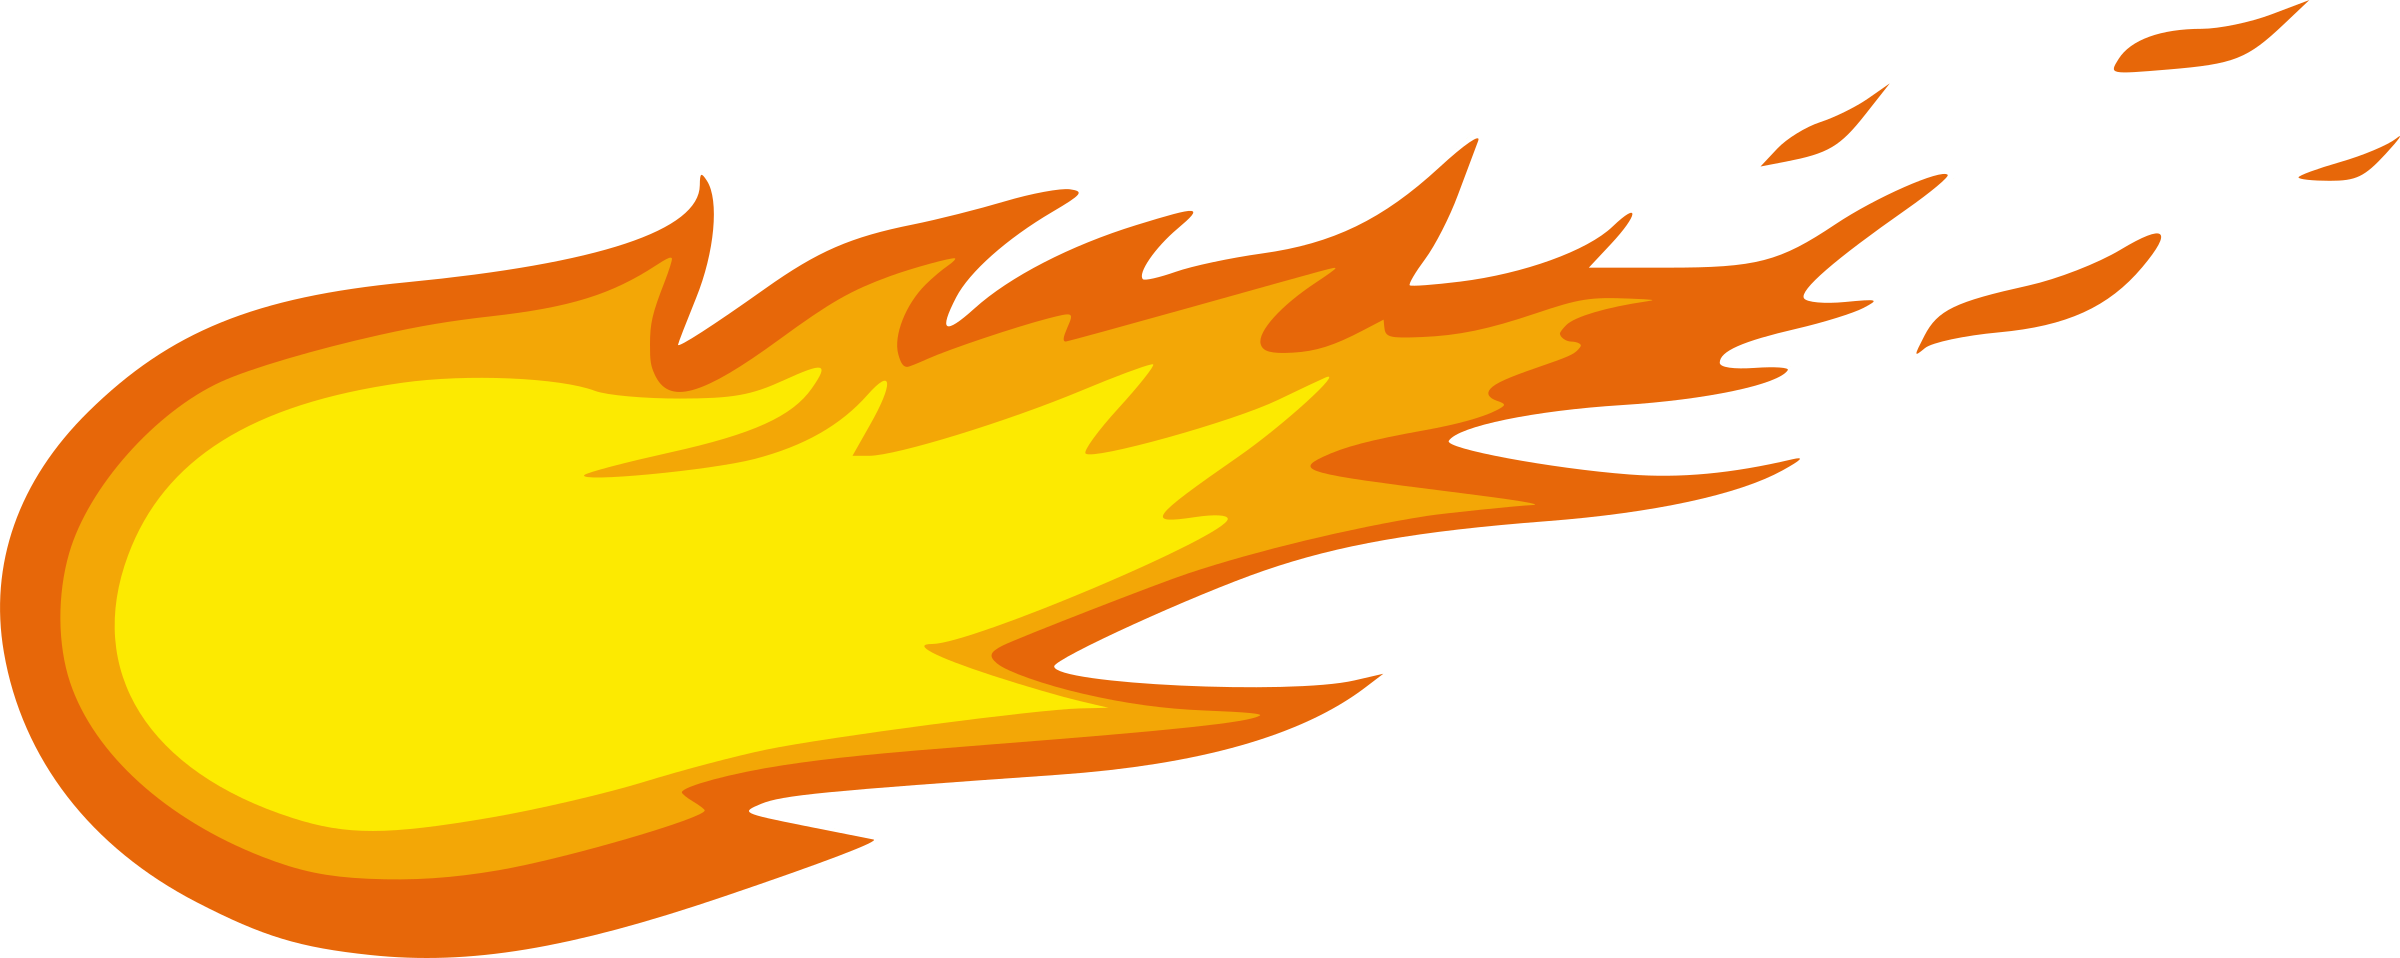 2400x958 Burn Clipart Small Fire